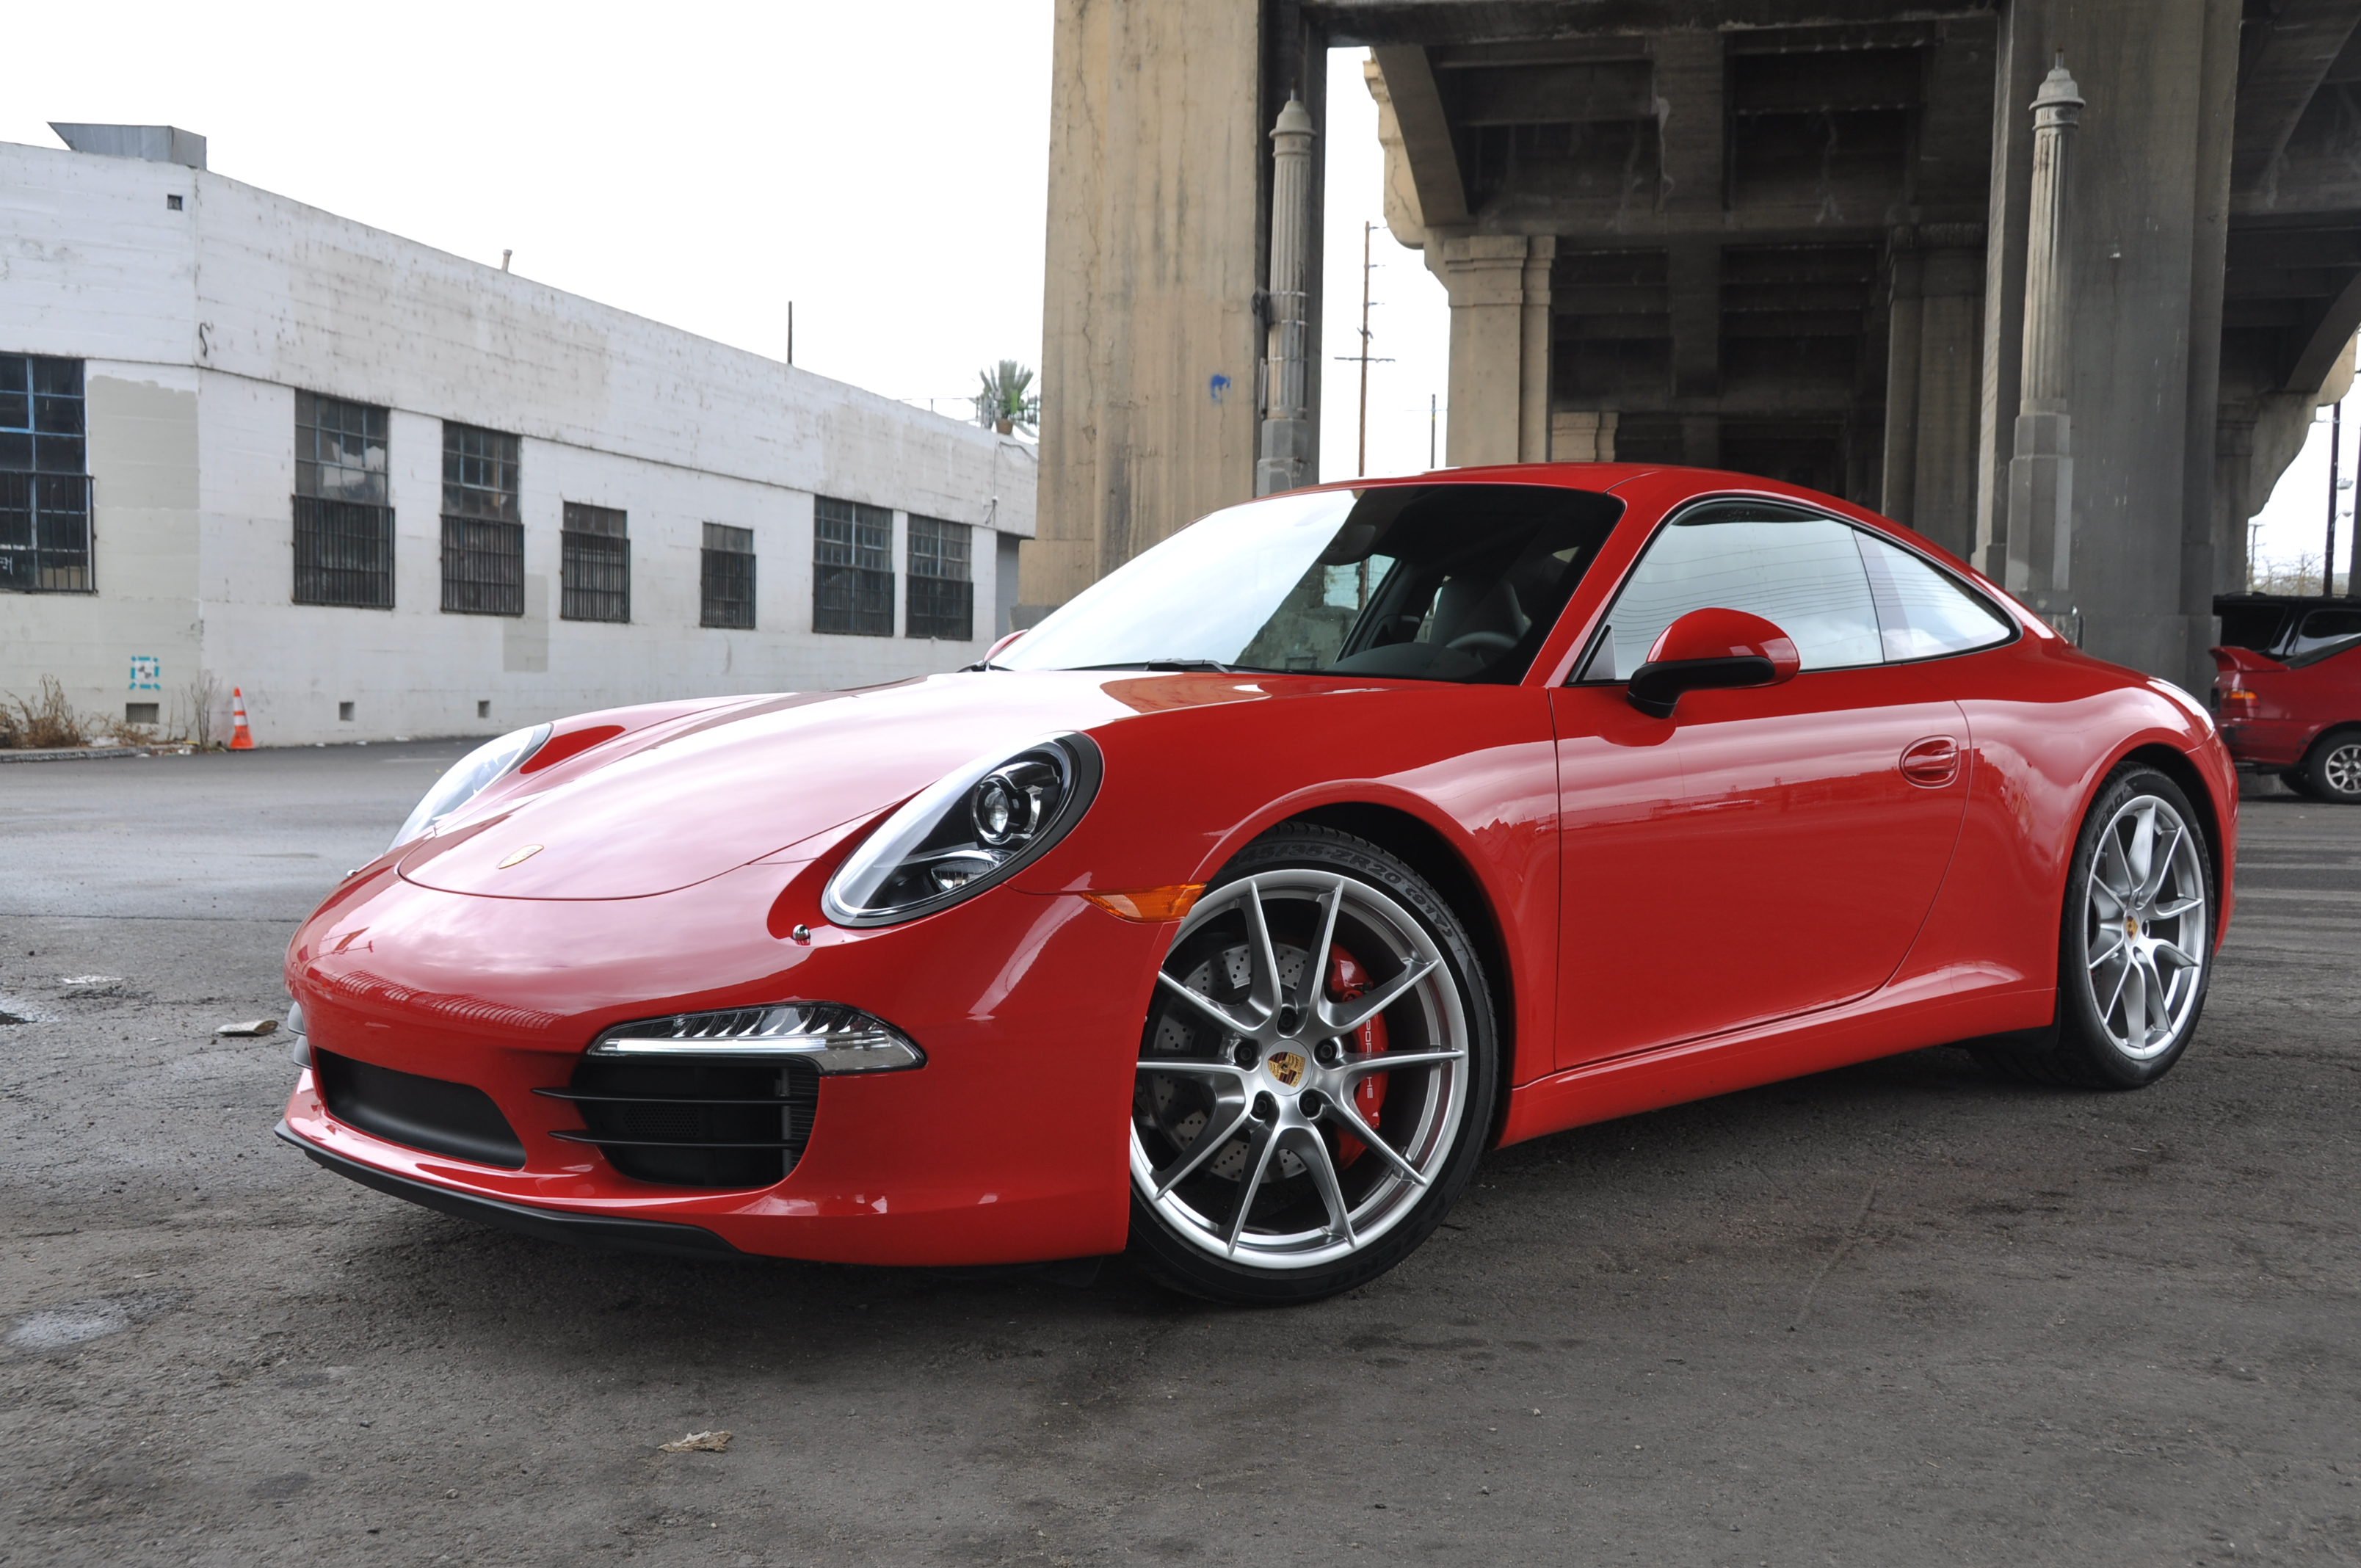 dealer s lot 2014 porsche 911 carrera s totally that stupid. Black Bedroom Furniture Sets. Home Design Ideas